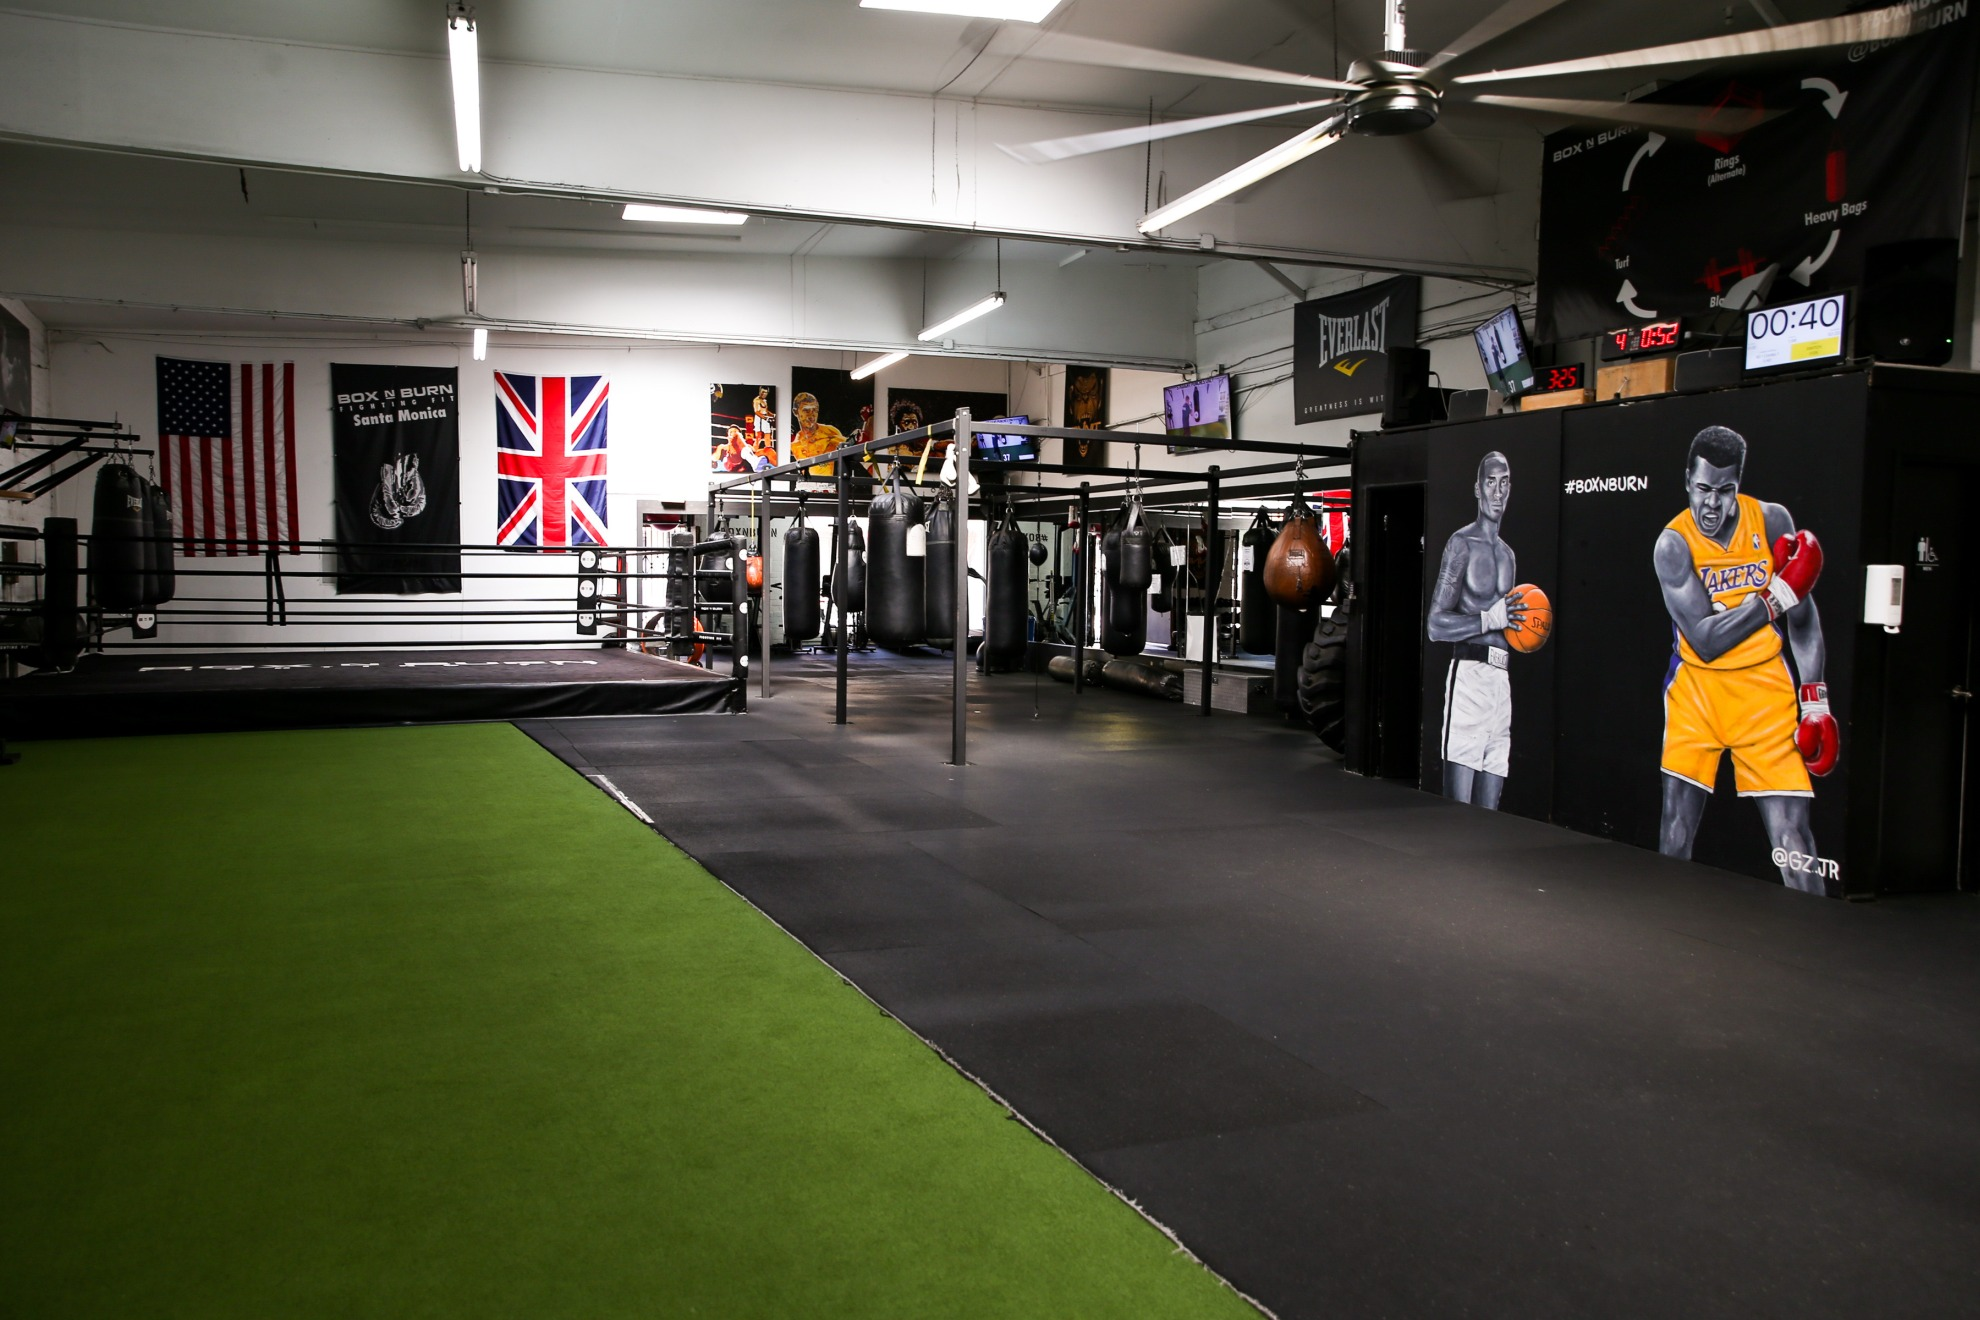 Santa monica large boxing gym for rent to film industry